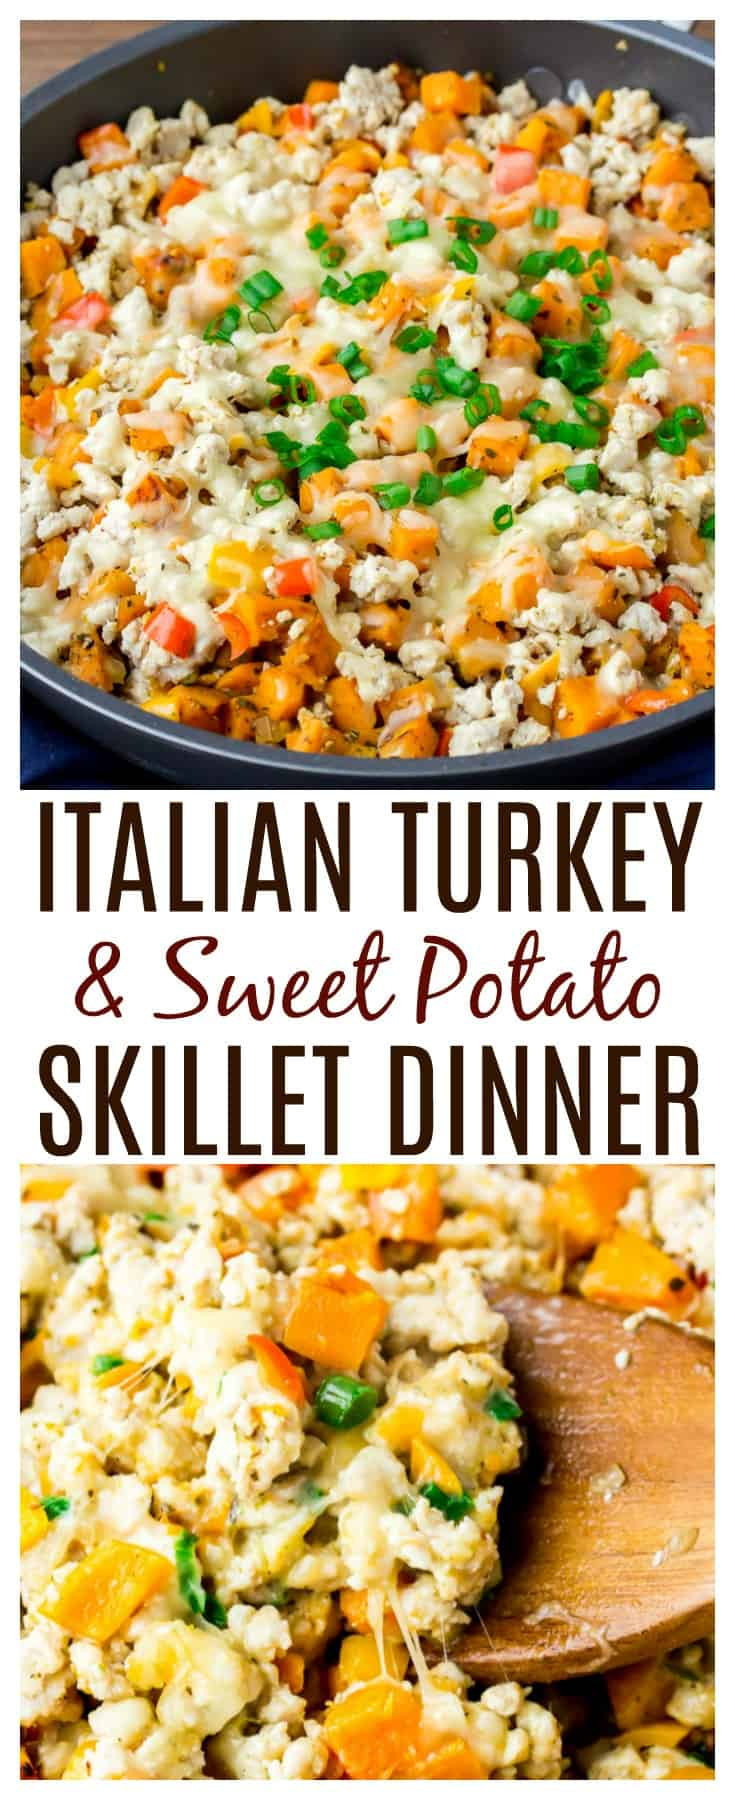 Italian Turkey Sweet Potato Skillet - made with ground turkey and sweet potatoes, this is a flavorful, family-friendly, one-pan meal easy enough to make any night of the week! Naturally gluten free too! | #turkey #onepanrecipes